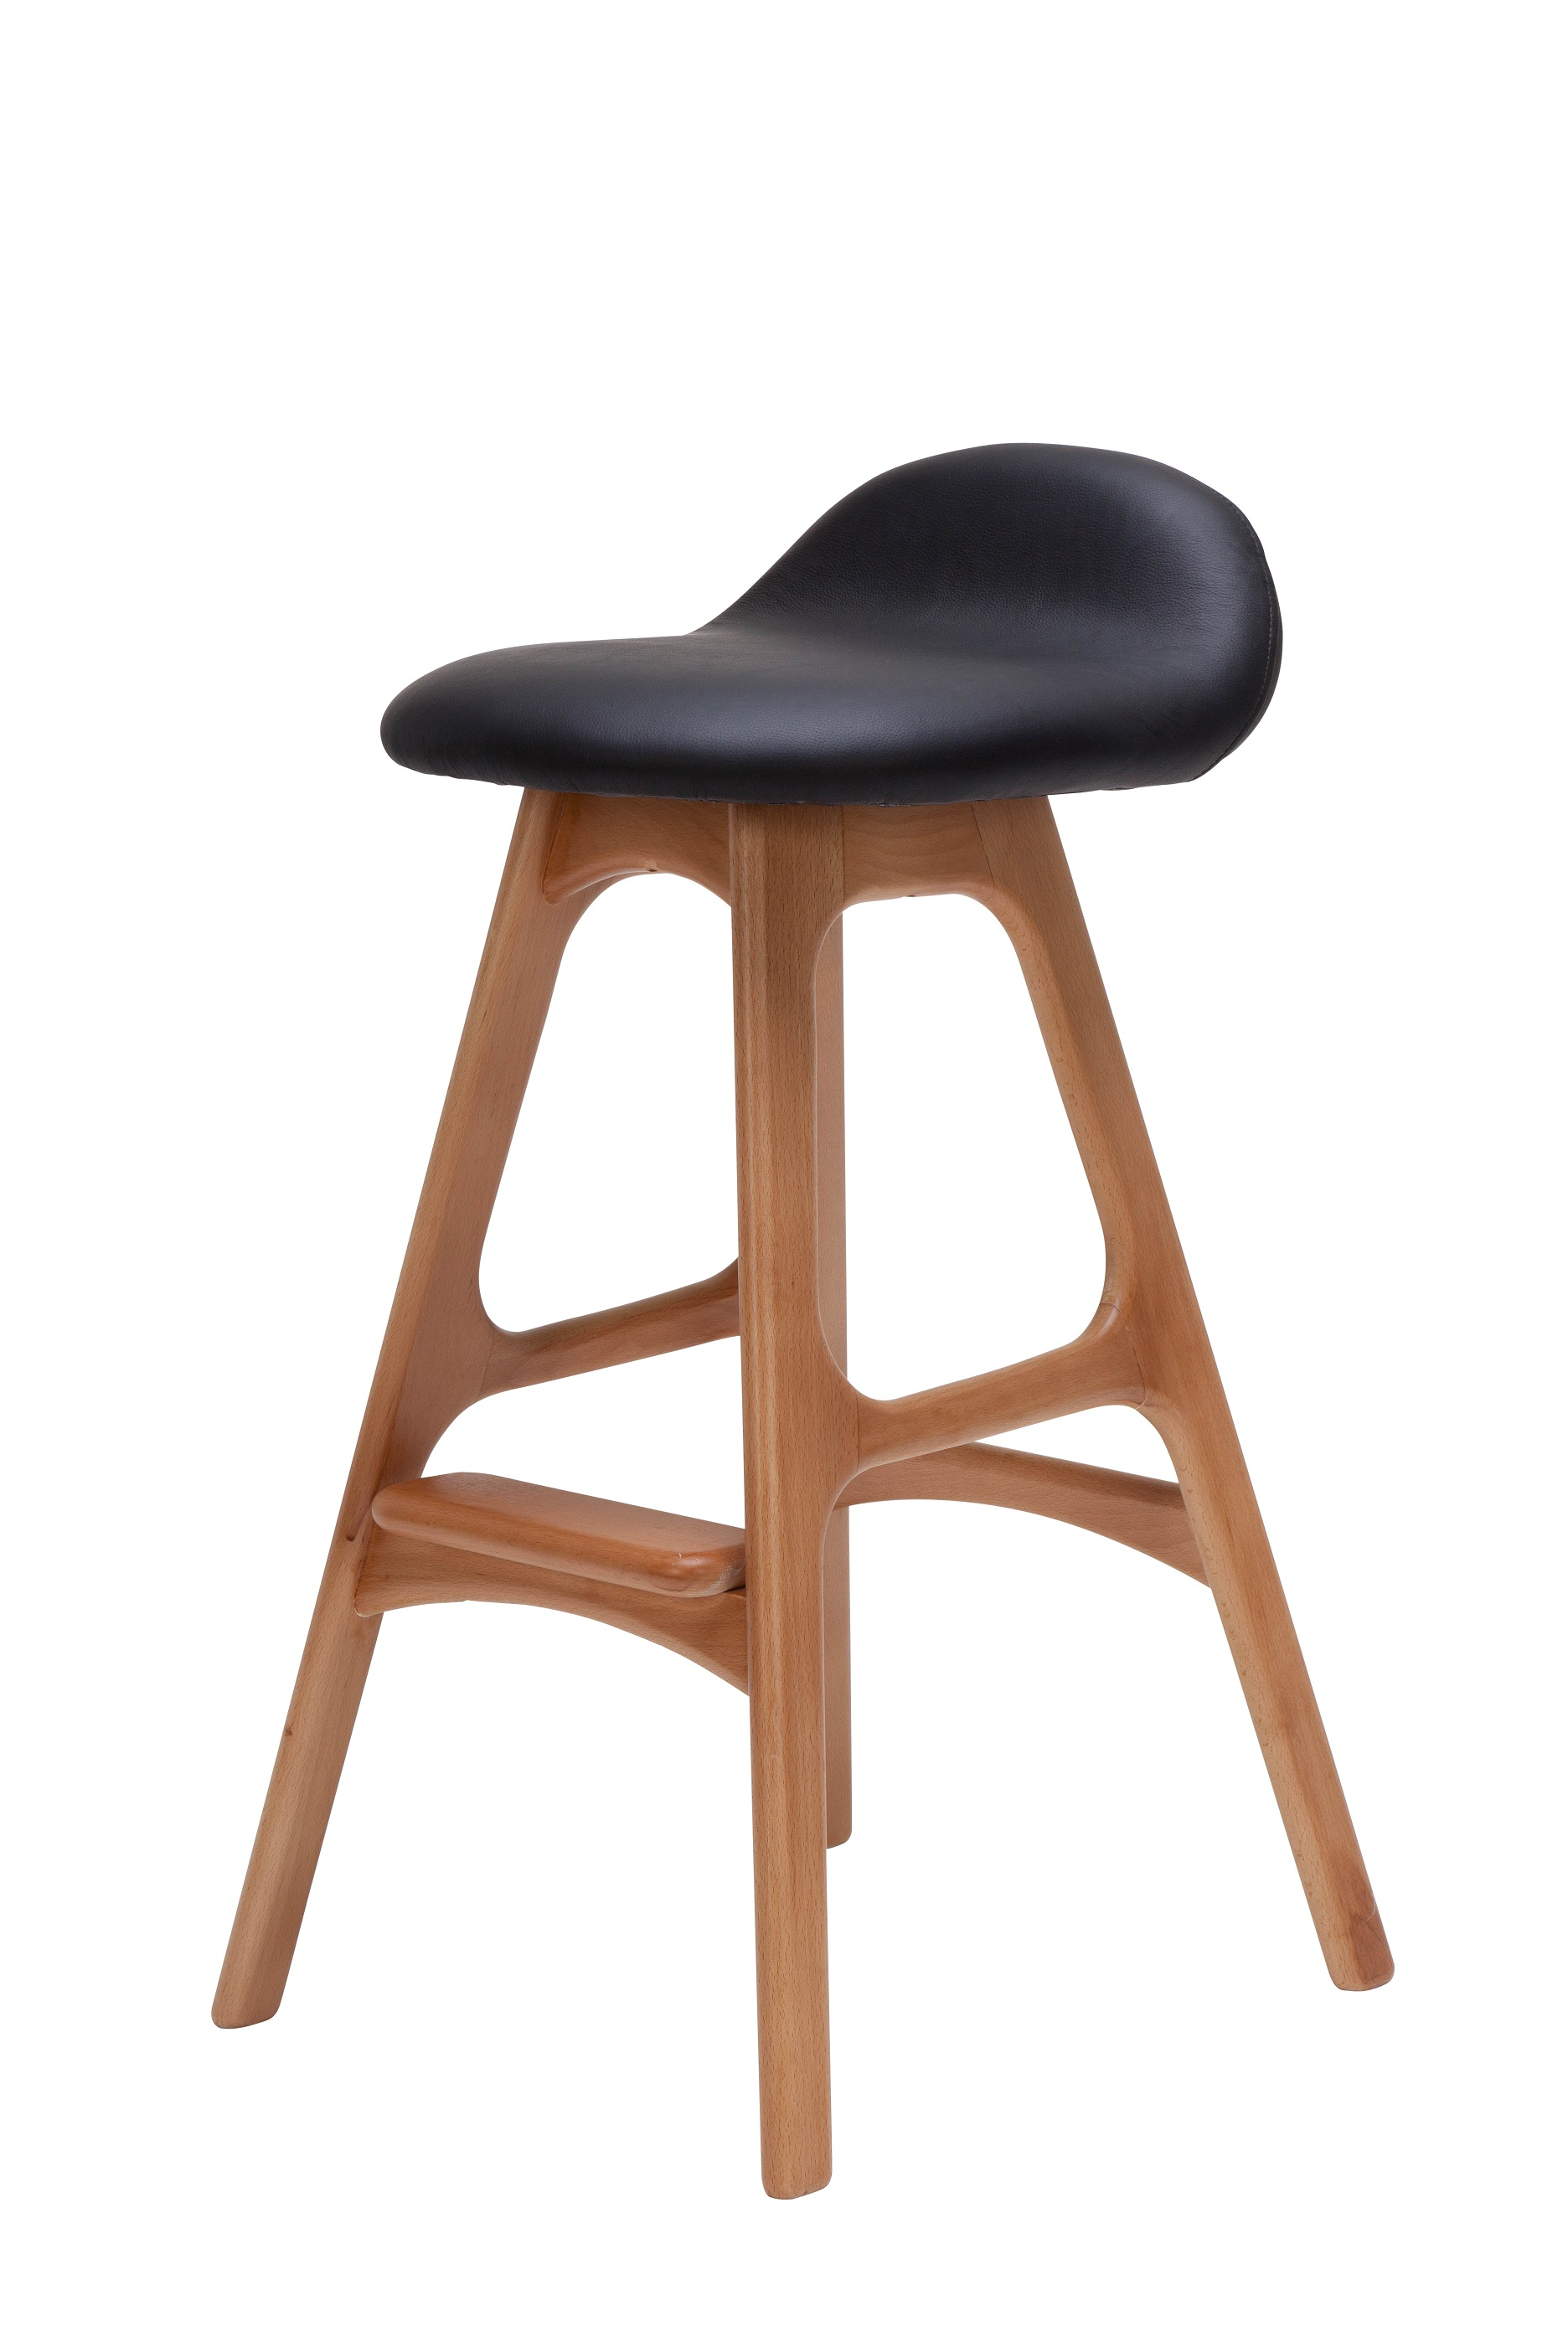 Pleasing Freedom Bar Stools Cool Bar Stools Design Gives Perfection Gmtry Best Dining Table And Chair Ideas Images Gmtryco